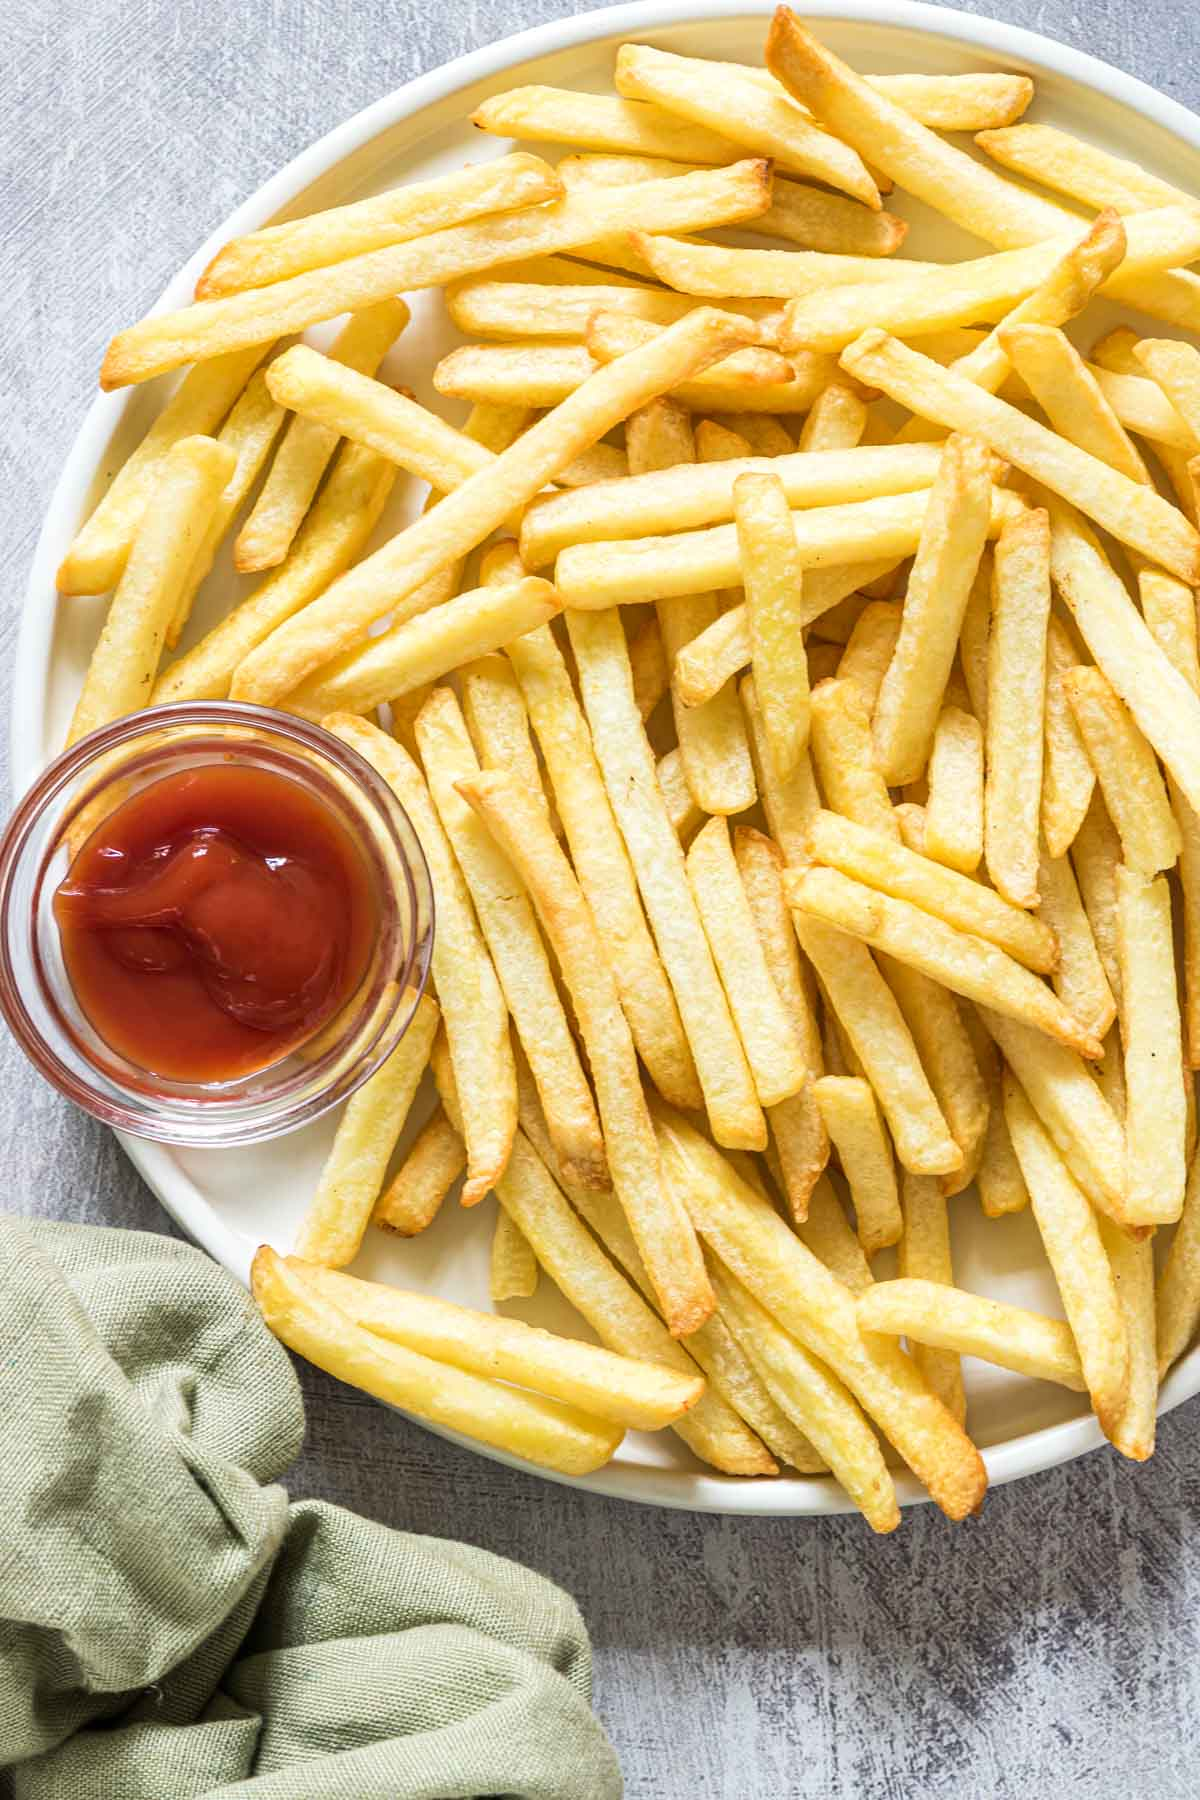 a close up of fries after reheating fries in air fryer